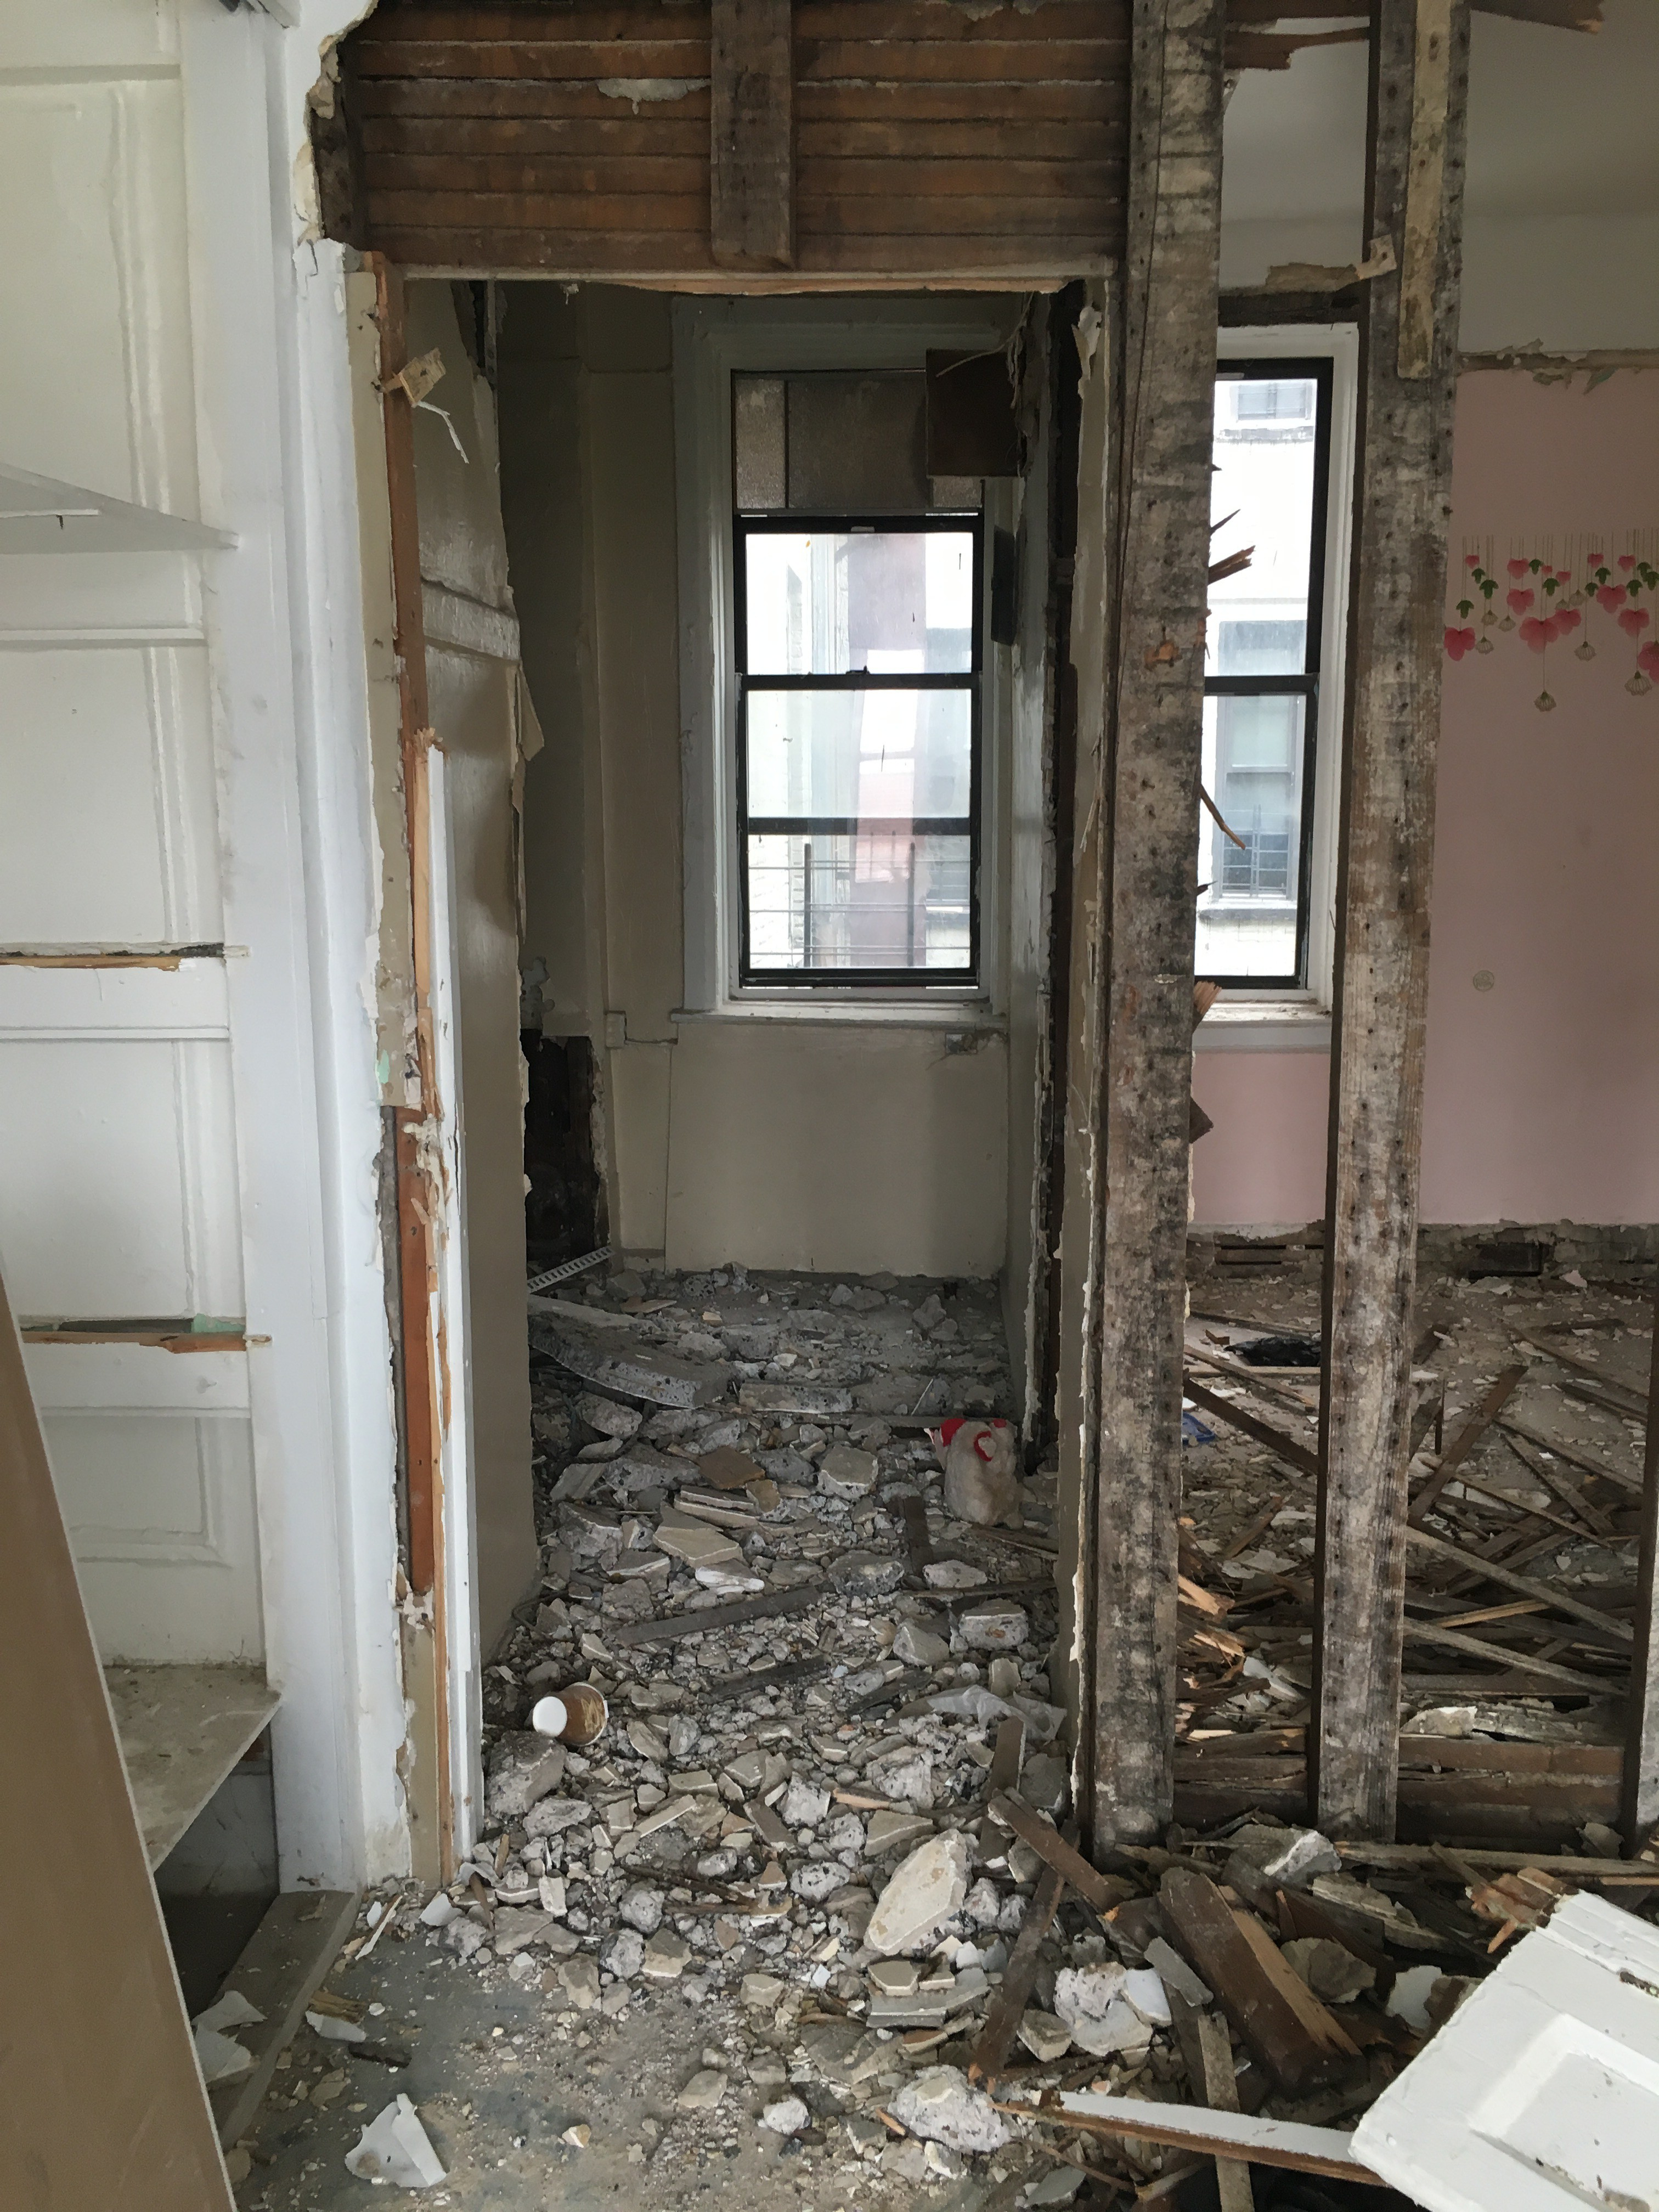 Clara Wainwright, 70, is forced to walk through a vacant apartment filled with rubble, one floor below hers, to use the bathroom after her landlord locked her out of her own, which had leaks that went unaddressed. Her building, 919 Prospect Avenue, is the worst in the Bronx and is owned by Seth Miller.